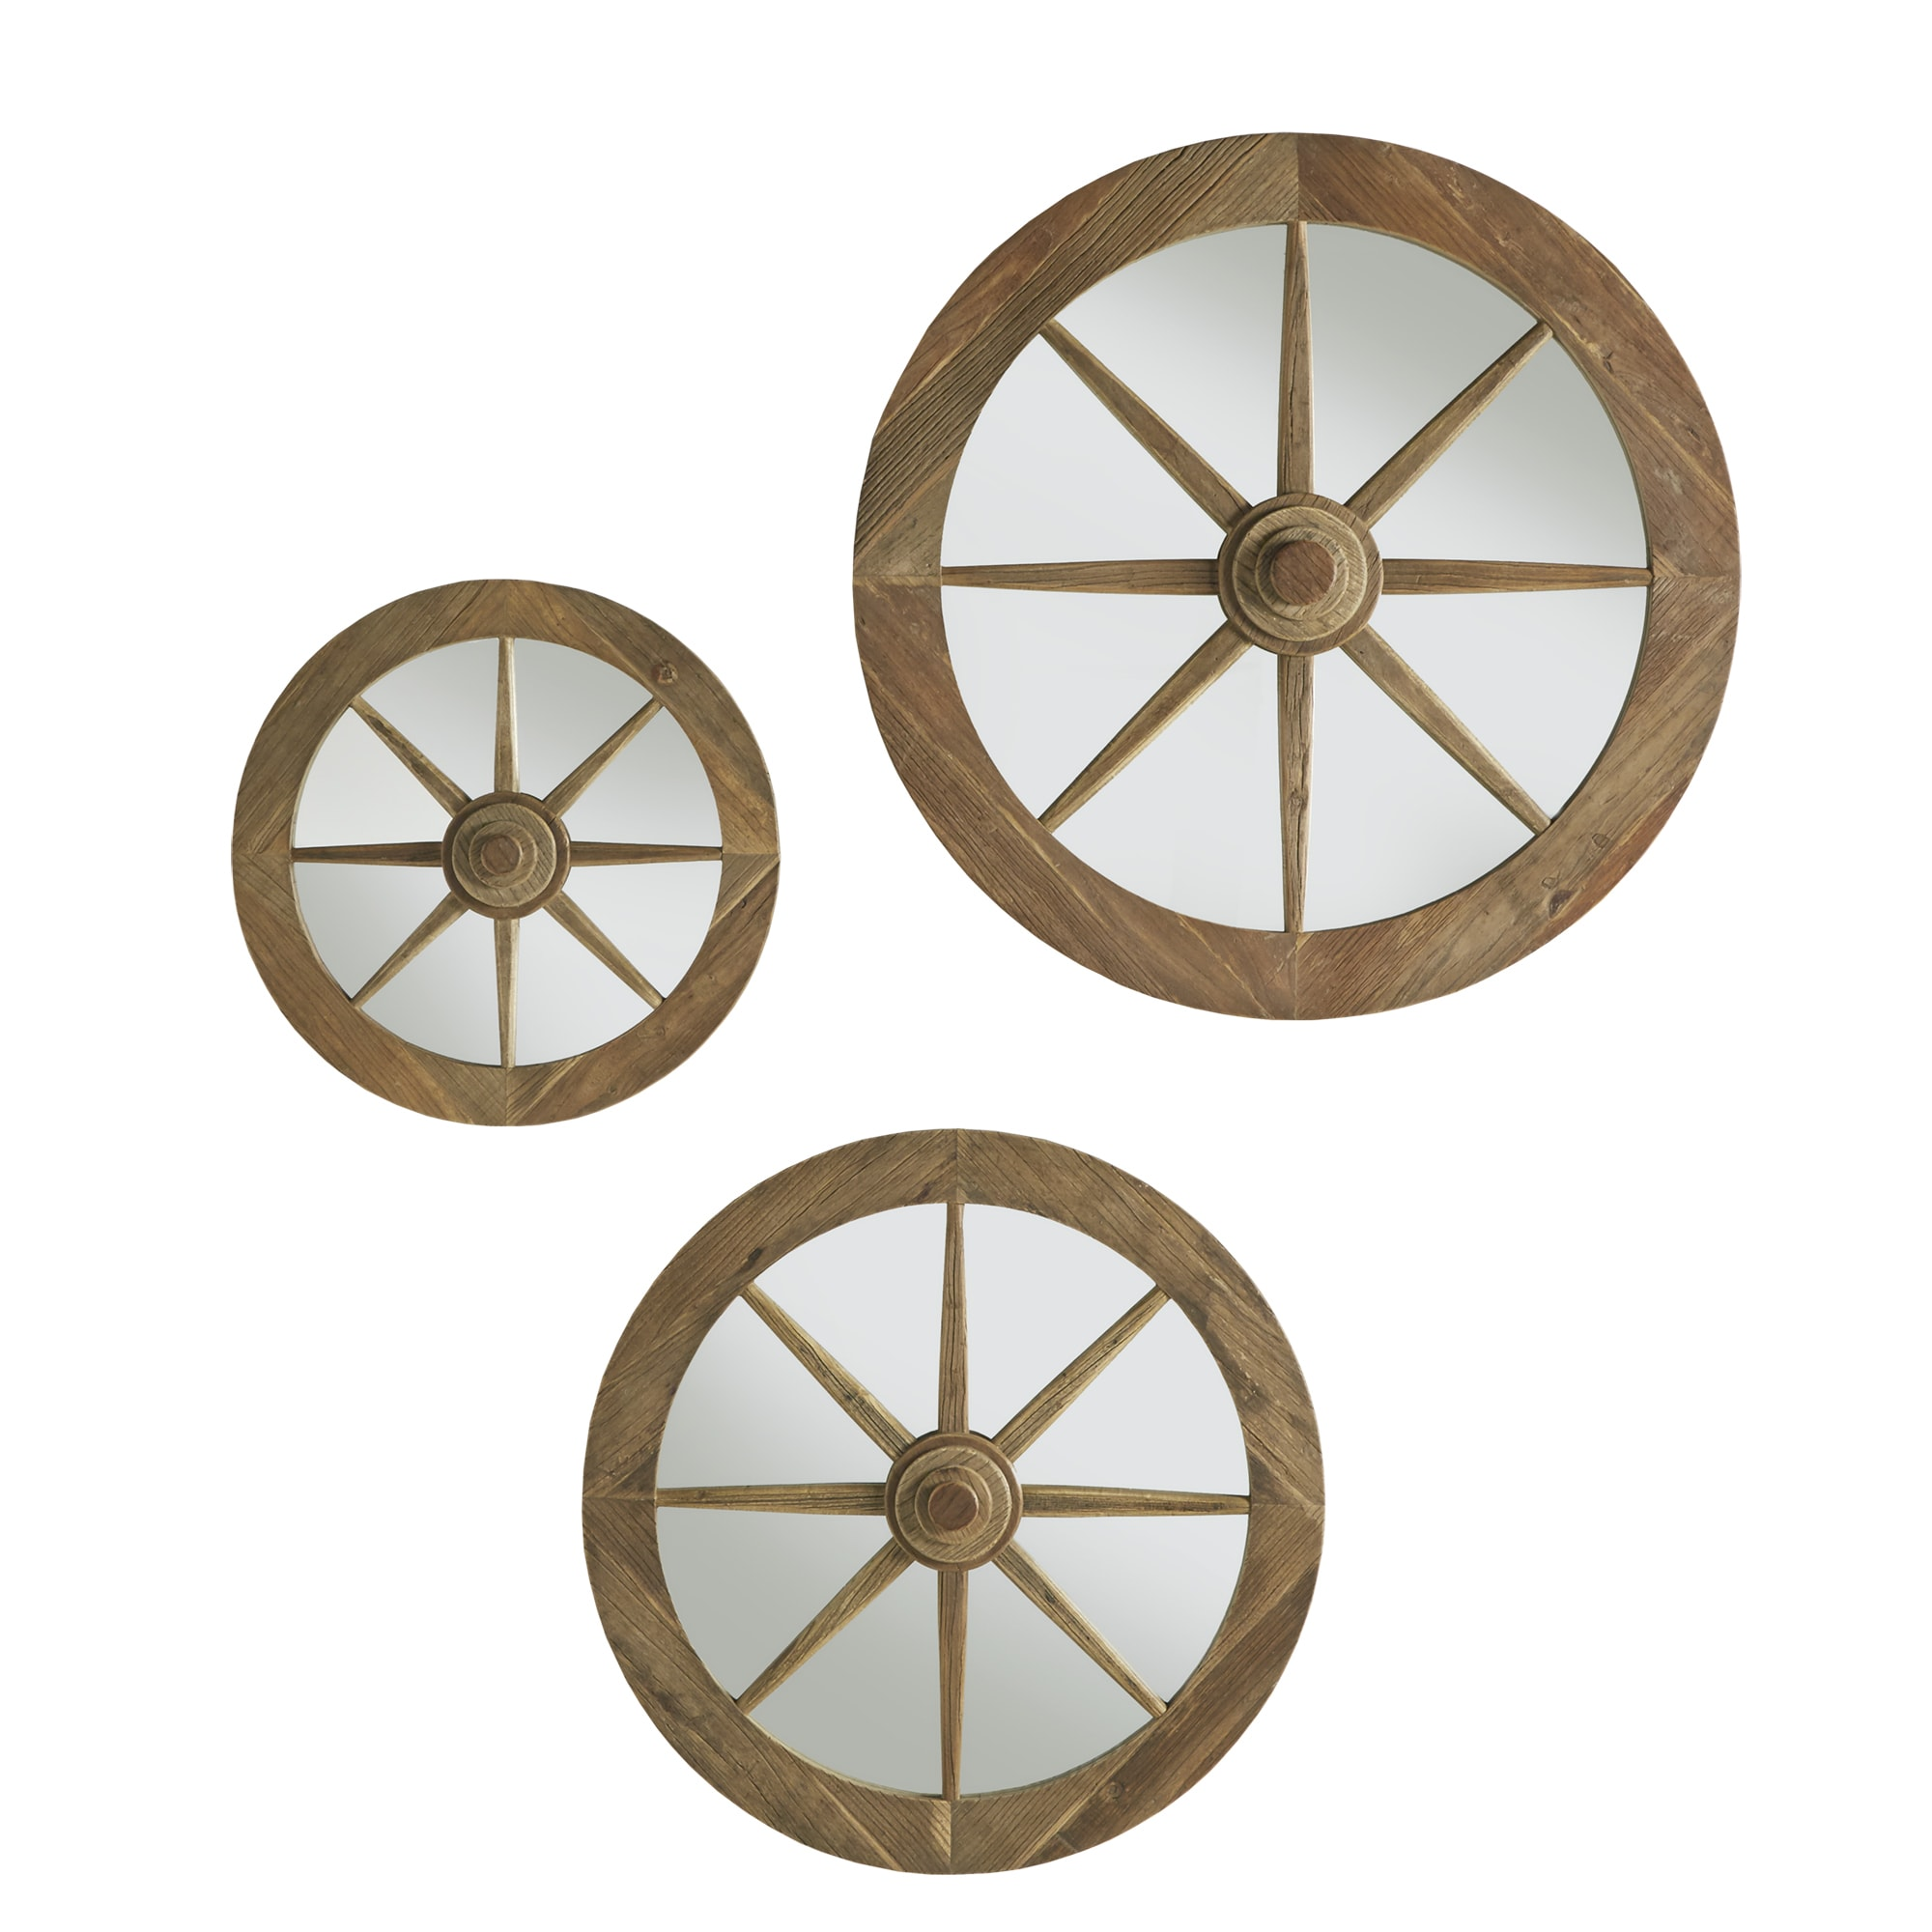 Moravia Round Reclaimed Wood Wagon Wheel Wall Mirror by iNSPIRE Q Artisan -  Free Shipping Today - Overstock.com - 18938295